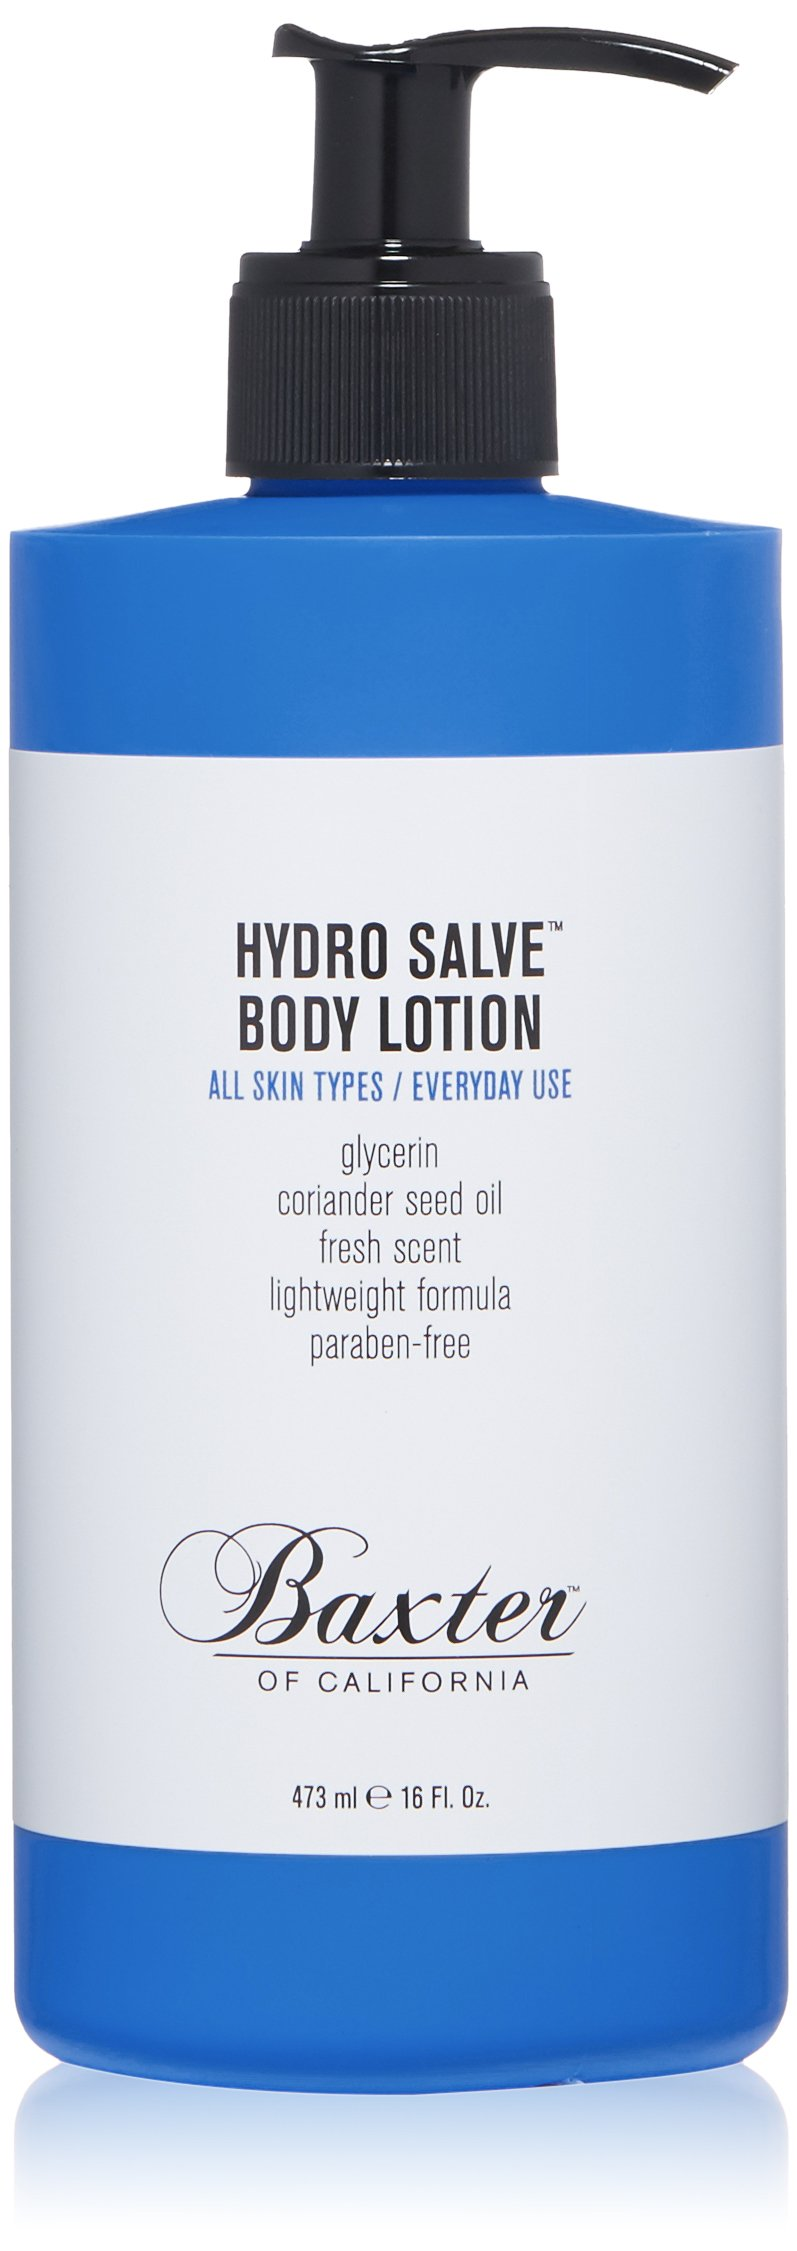 Baxter of California Hydro Salve Body Lotion for Men, 16 oz. by Baxter of California